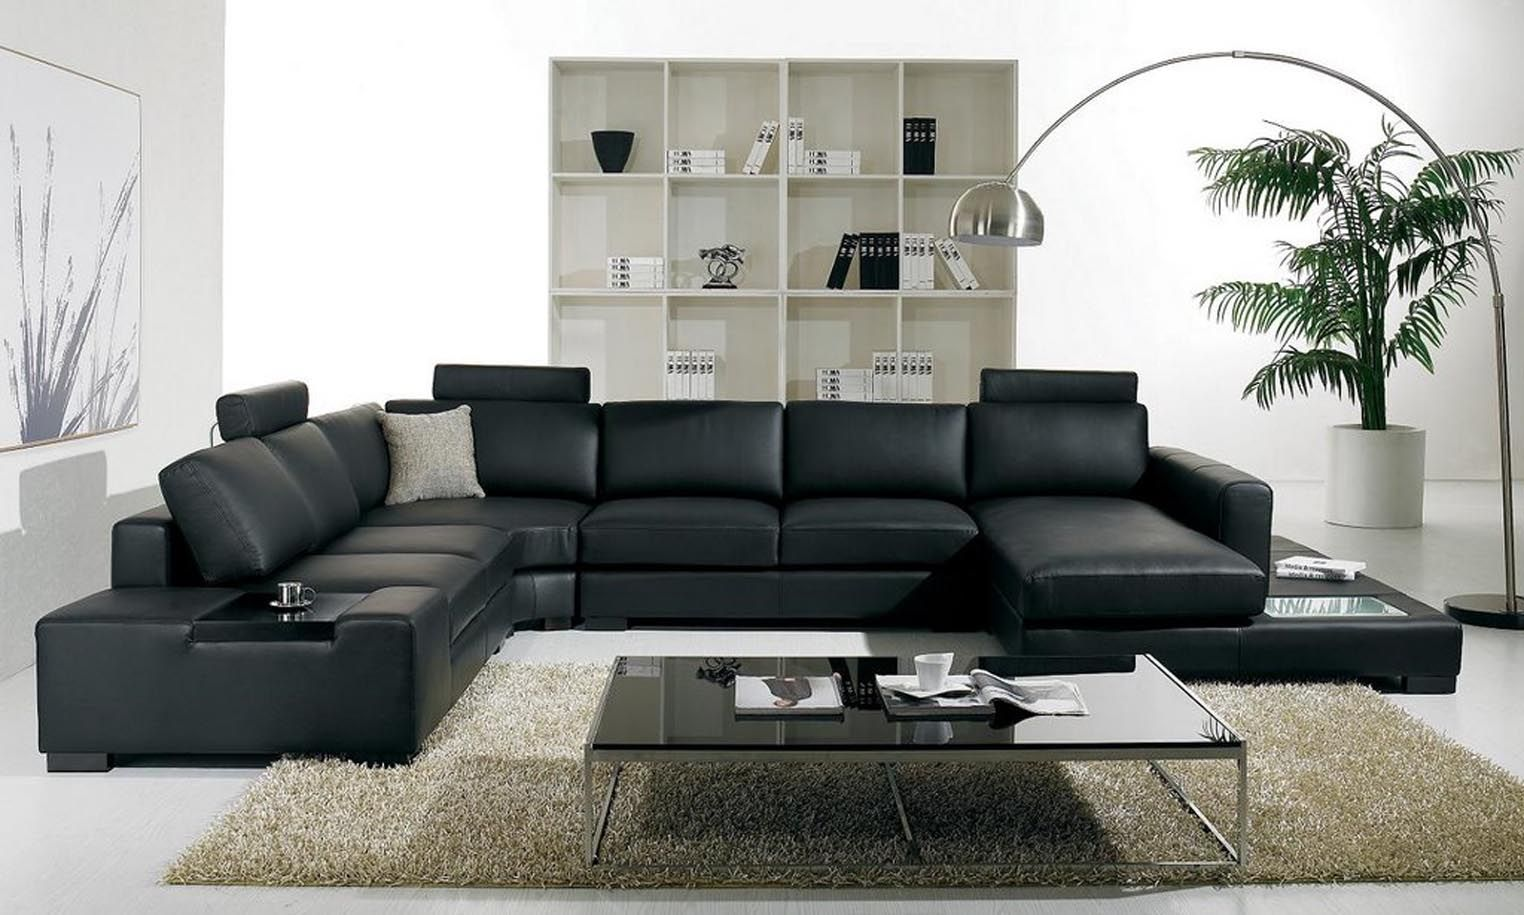 Living Room Furniture Leather living room with leather furniture pictures - hypnofitmaui